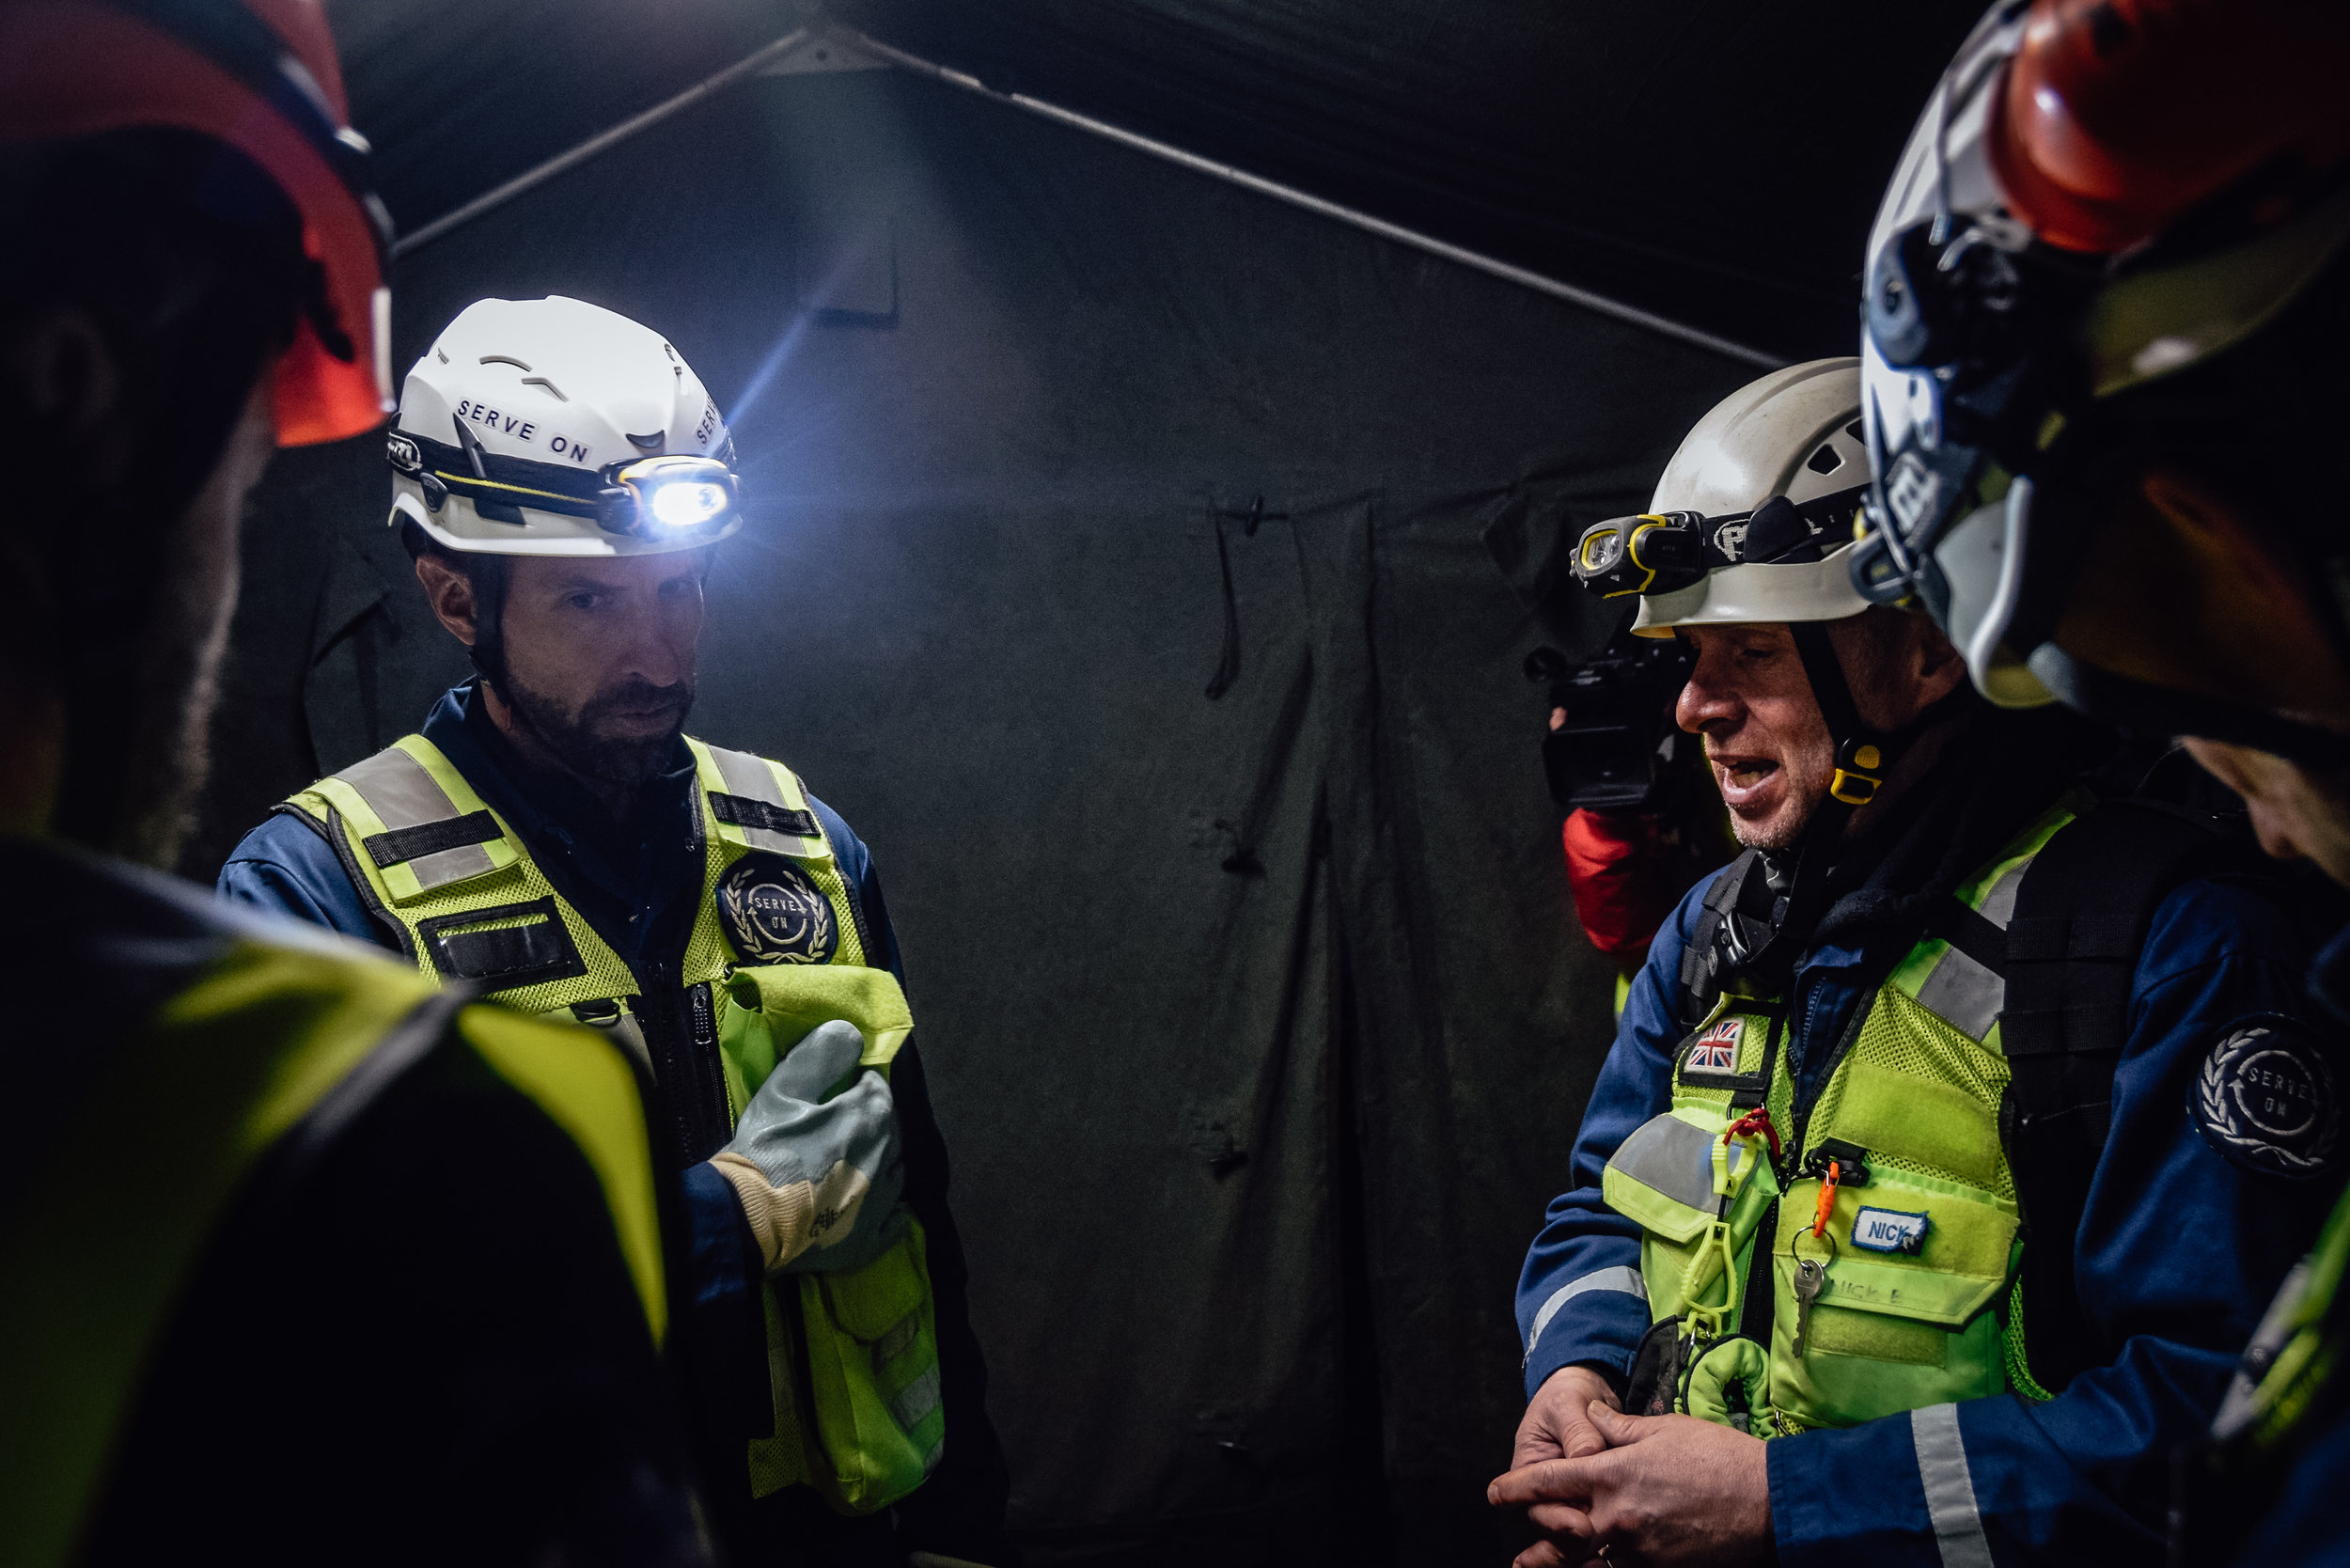 England football head coach Gareth Southgate and other elite trainers being briefed by Serve On International Response Team volunteer Nick Borritt during disaster experience training with the Serve On humanitarian response charity. Photo by Matt Evans